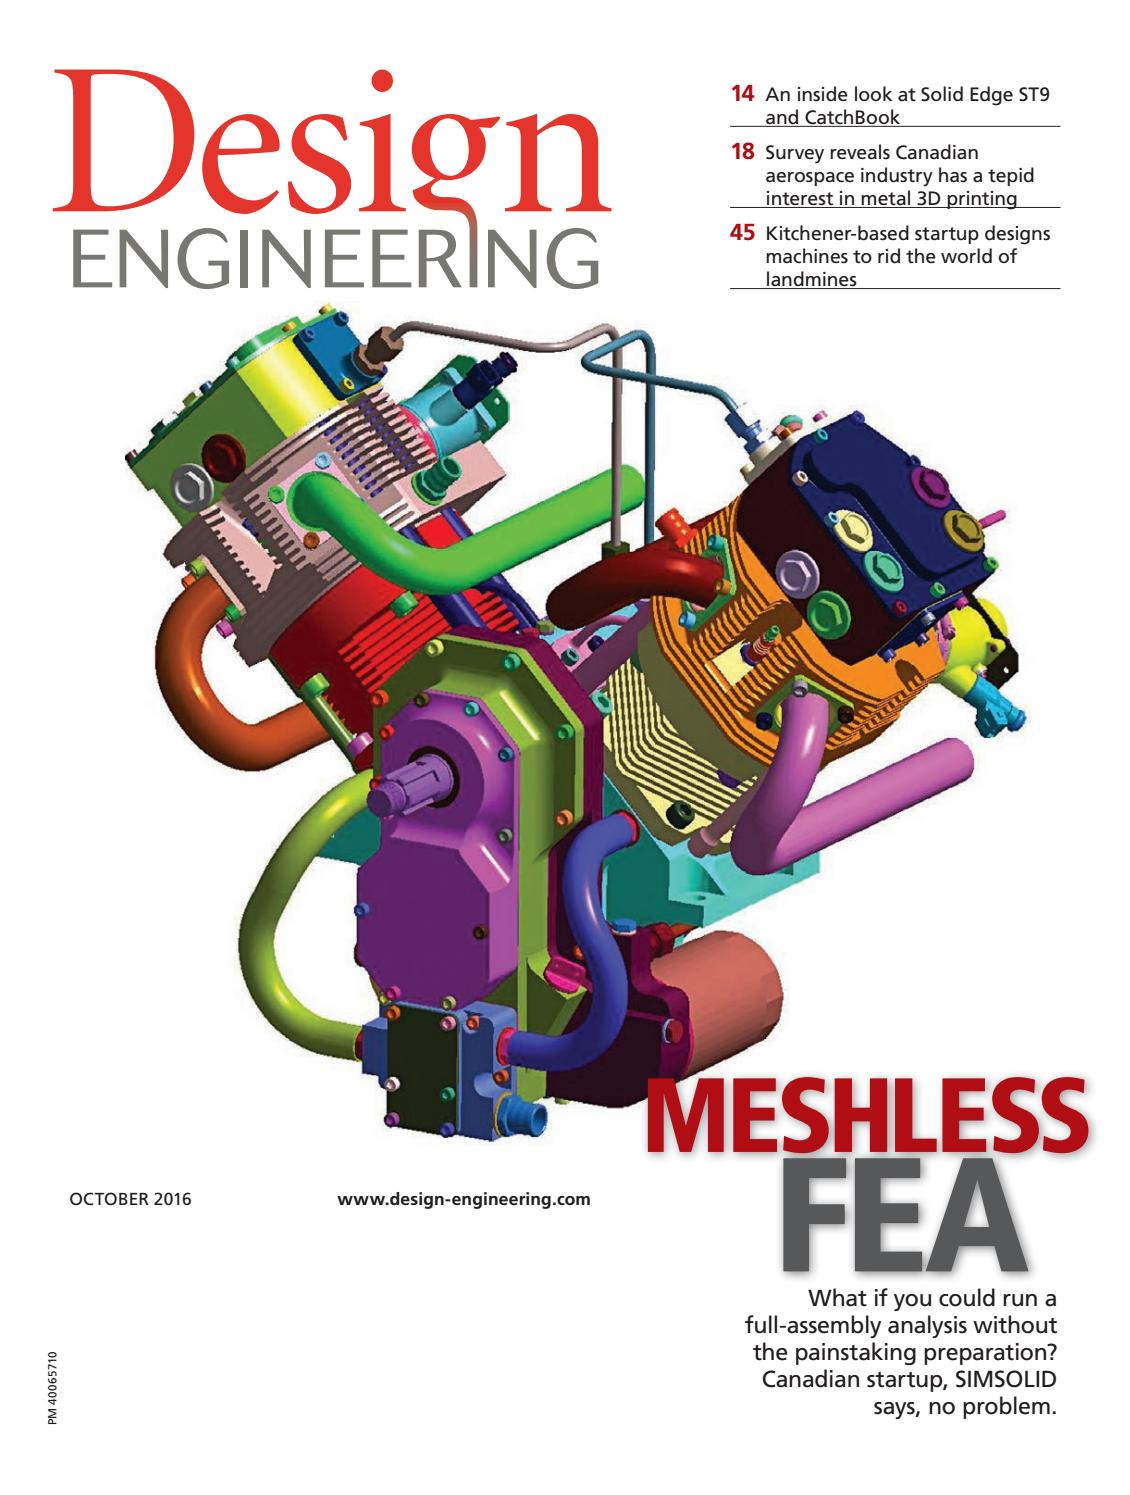 Design Engineering October 2016 By Annex Newcom Lp Issuu Traditional Wiring Method Of An Npn Proximity Sensor Without Using Plc